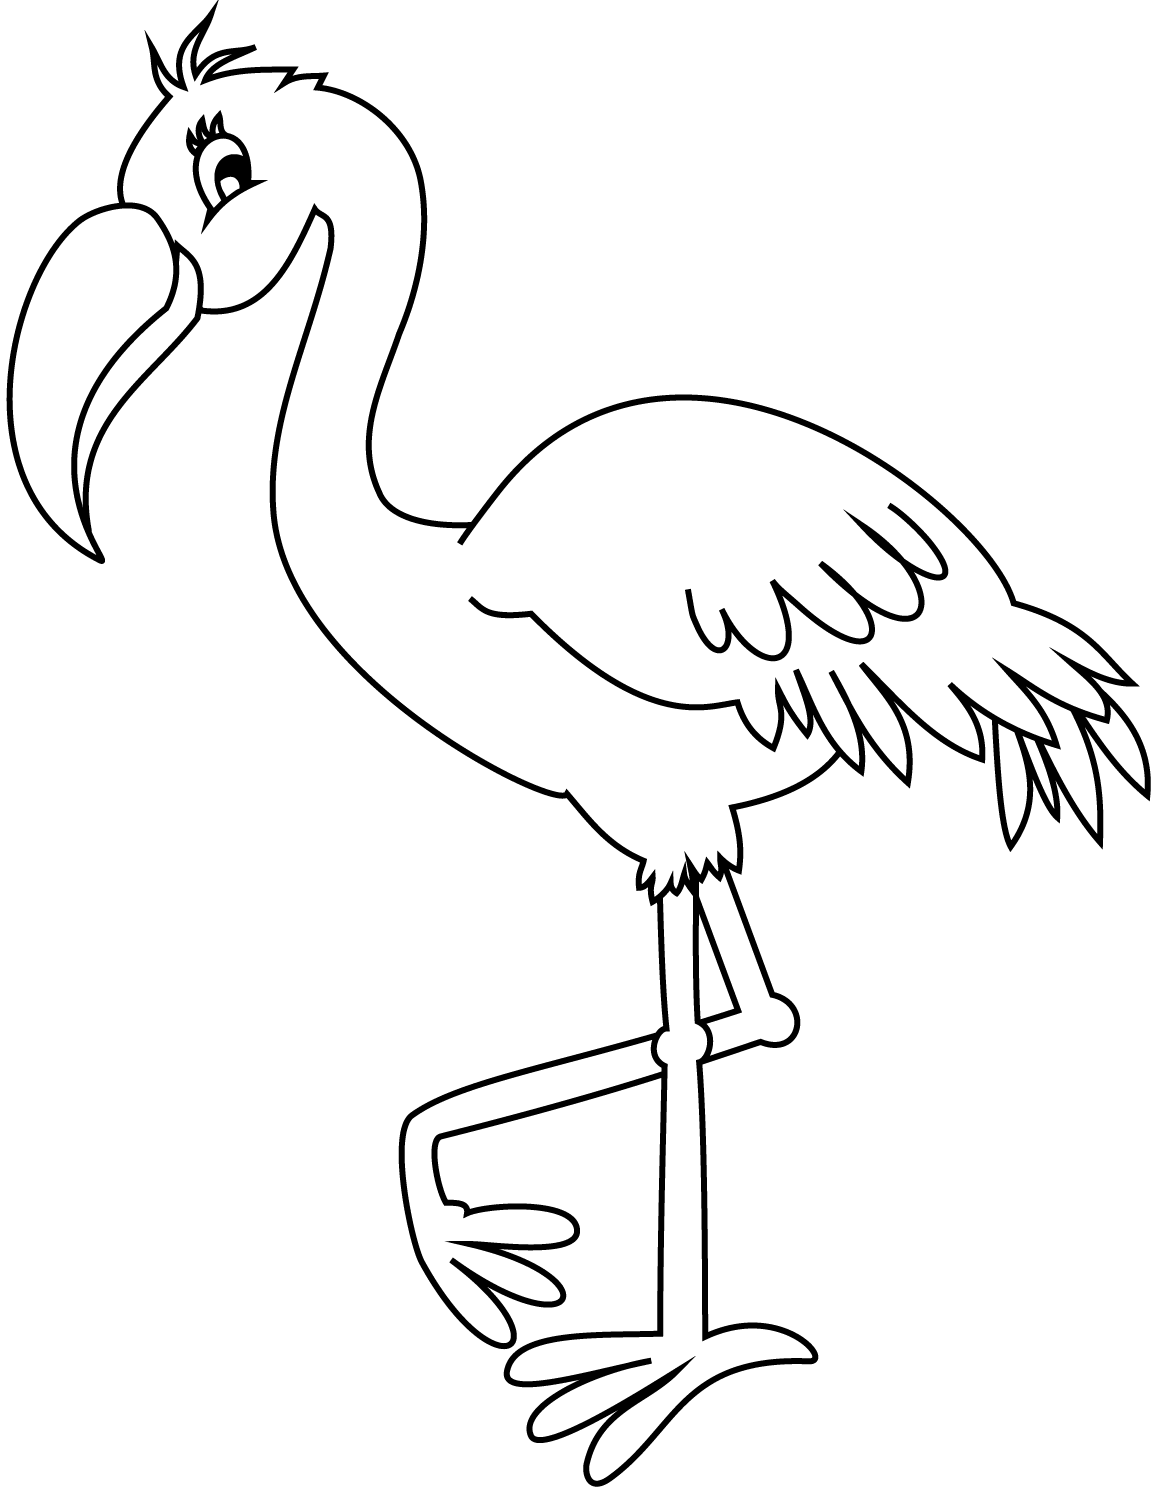 flamingo coloring sheet flamingo coloring pages to download and print for free flamingo sheet coloring